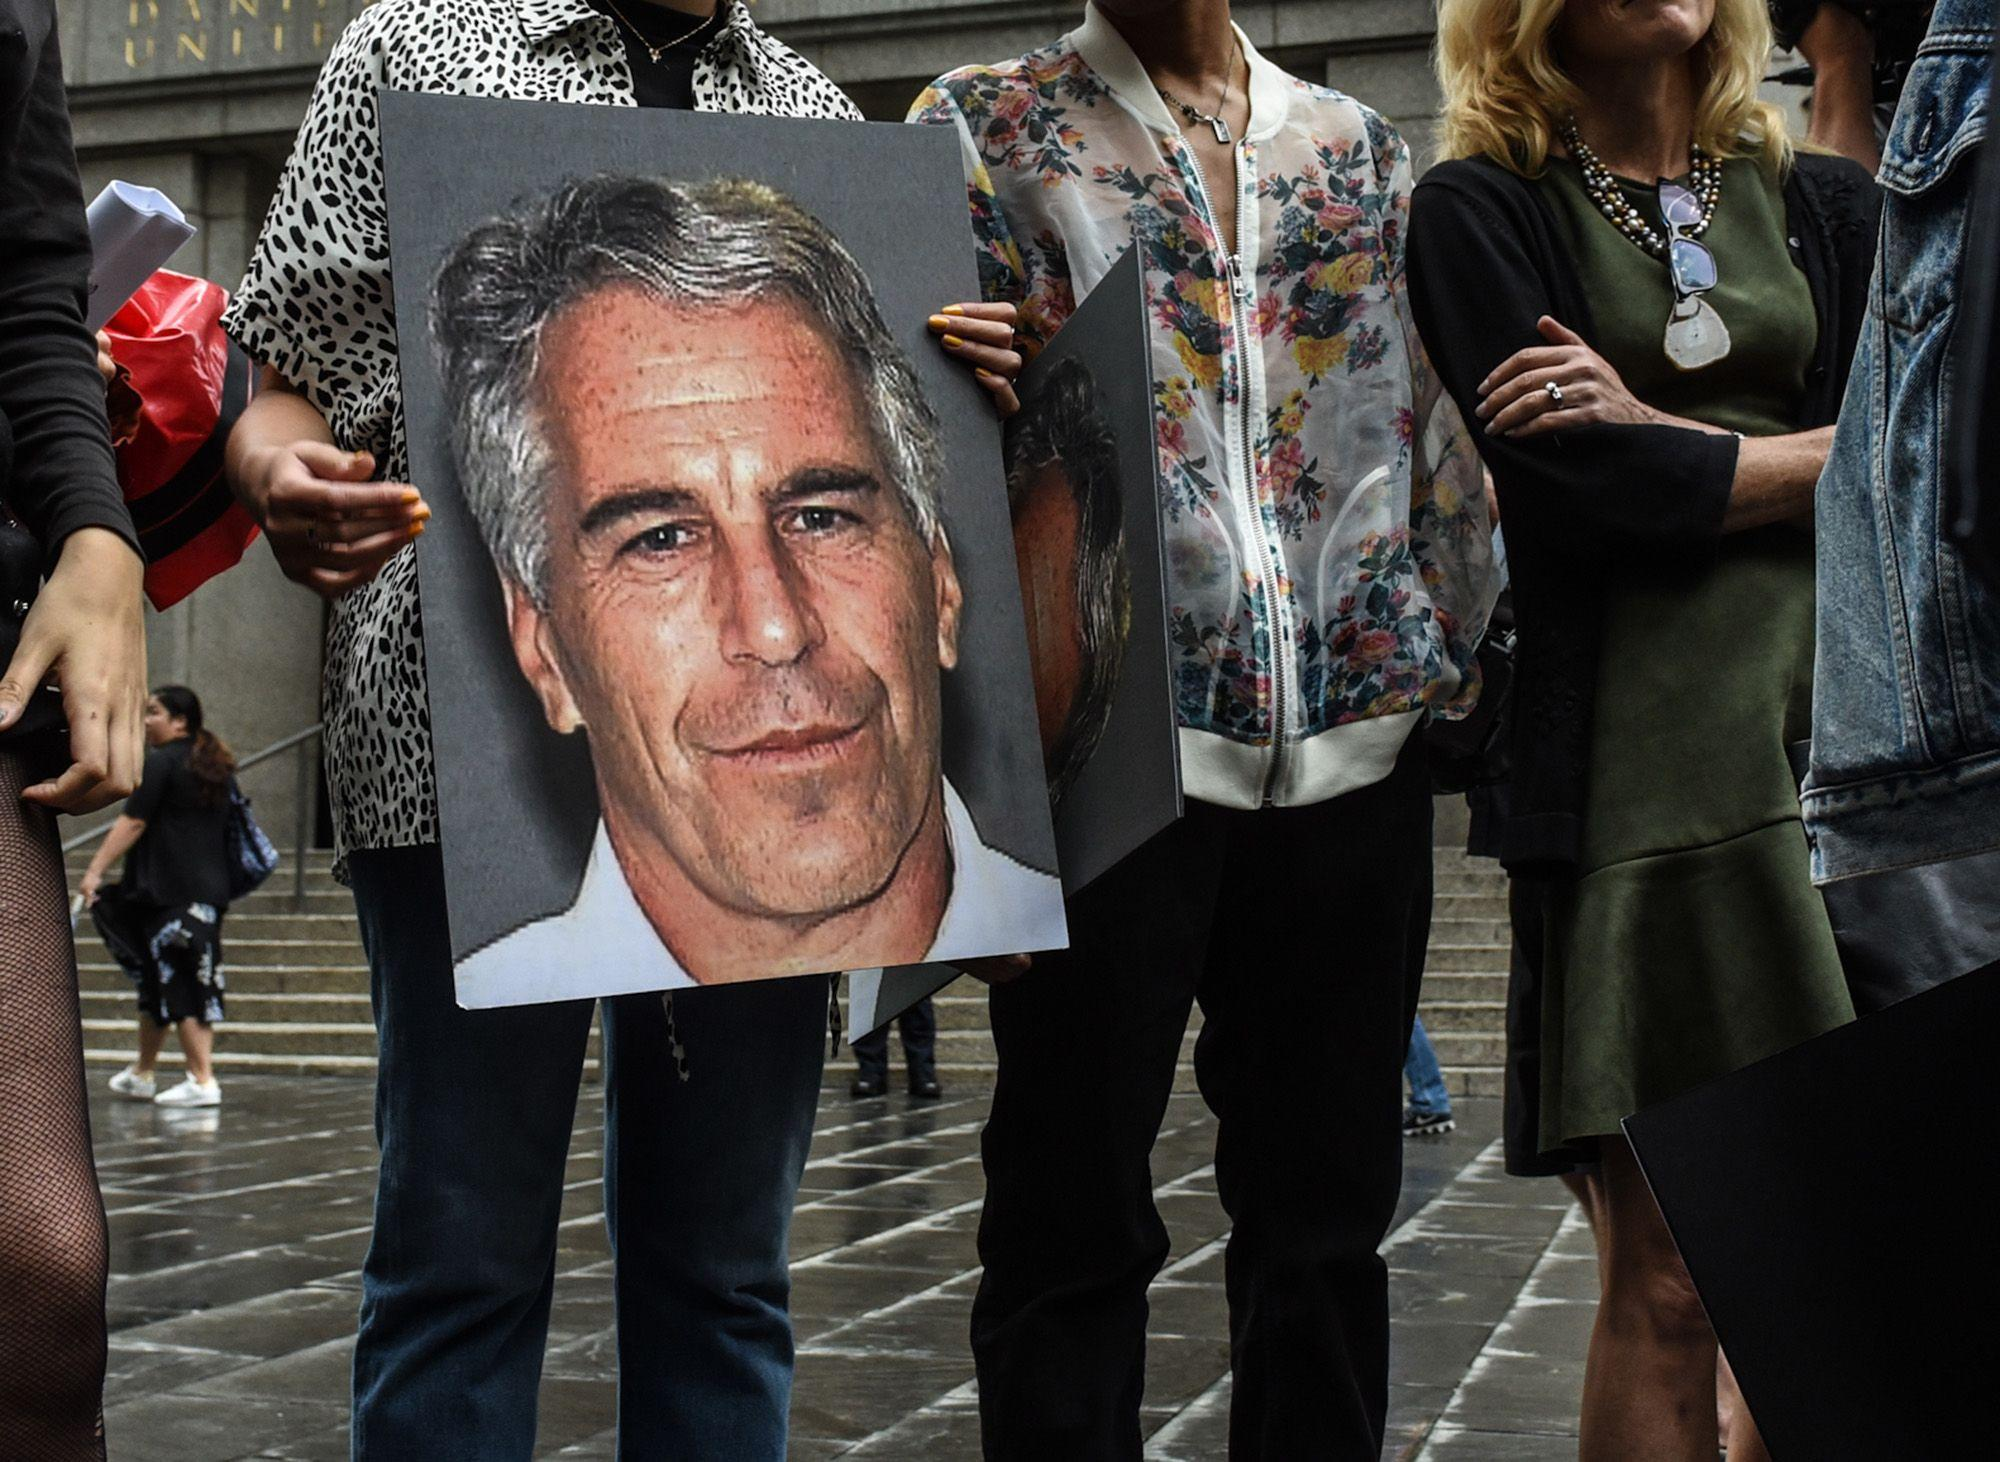 Judge sets tentative date for Epstein's trial